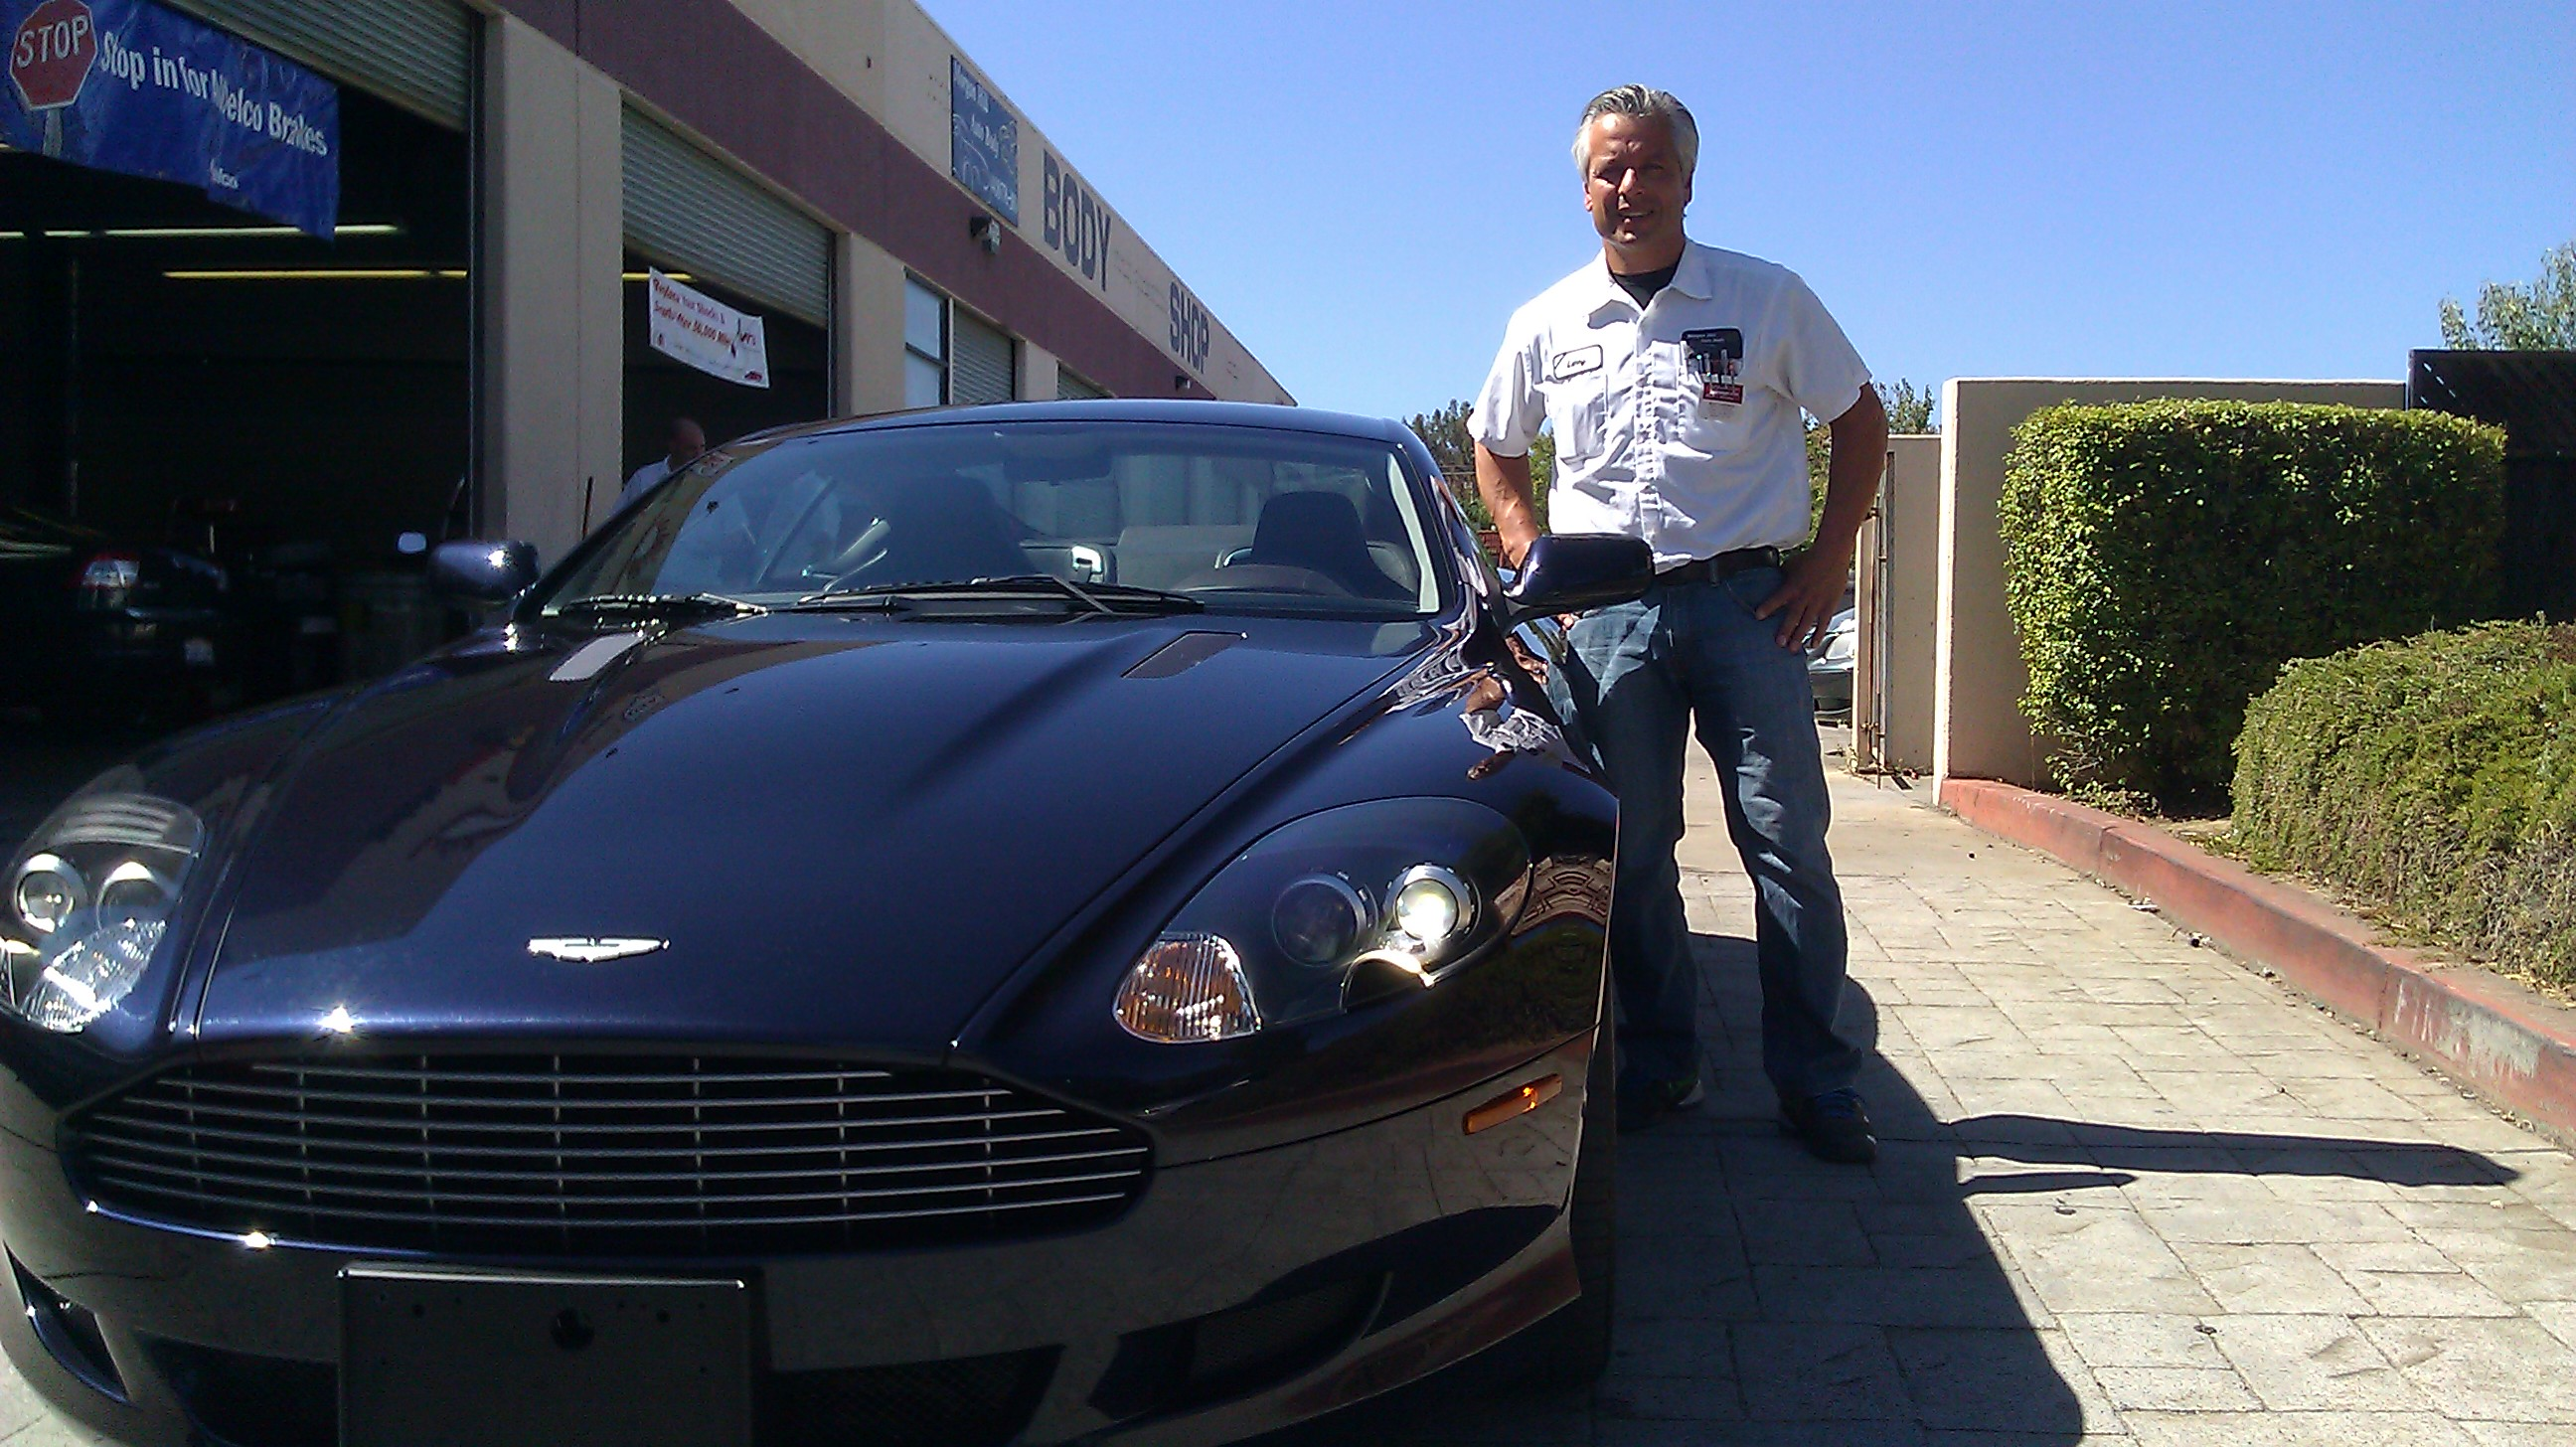 Aston Martin DB9 - Morgan Hill Auto Body Collision Repair